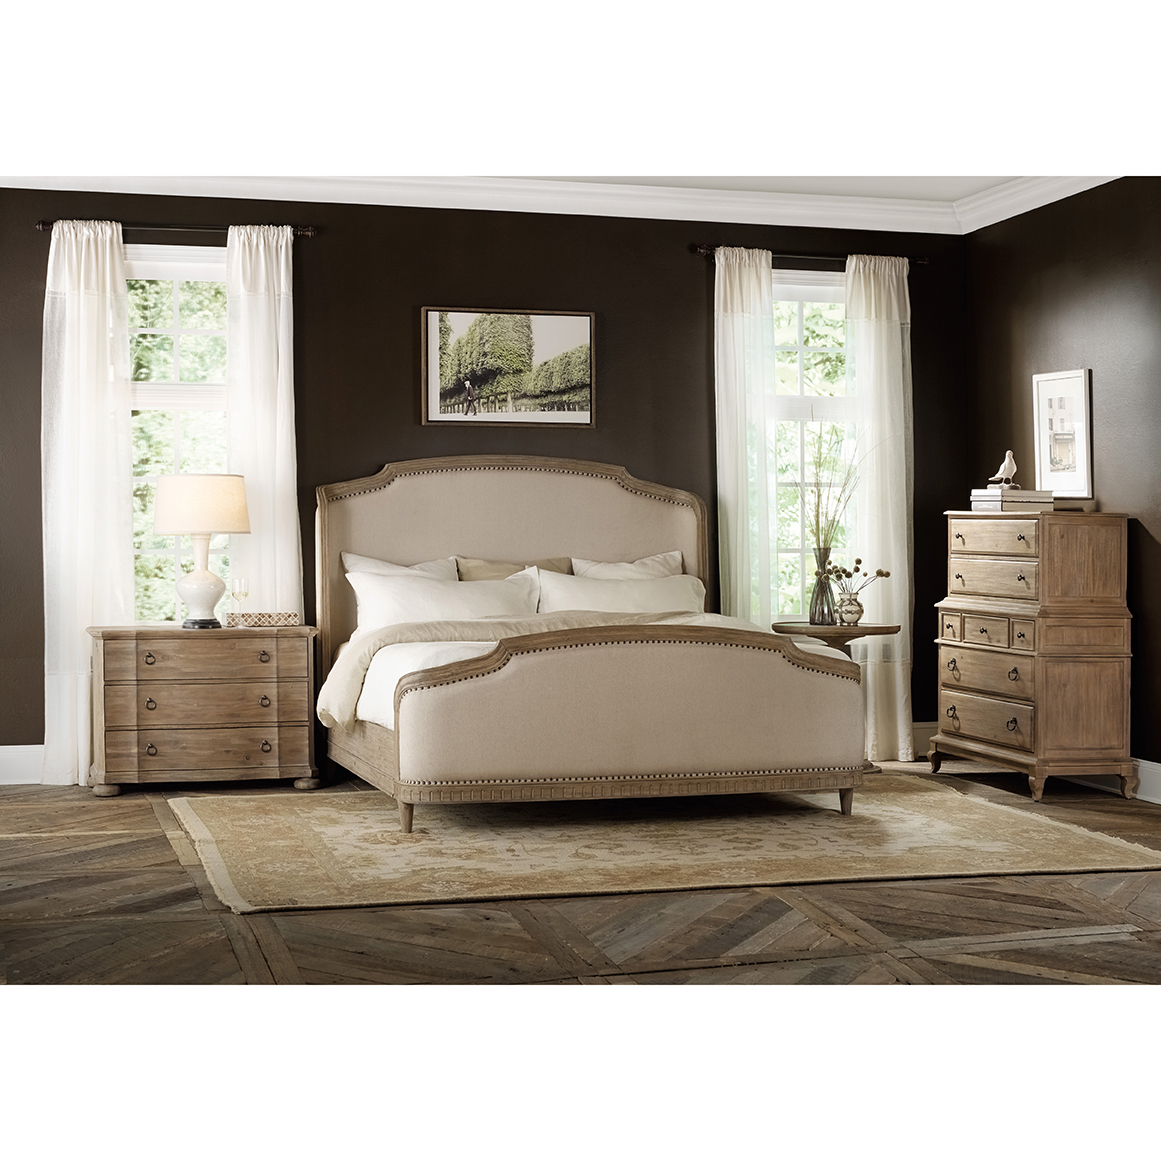 Moira French Country Upholstered Shelter Bed - Queen